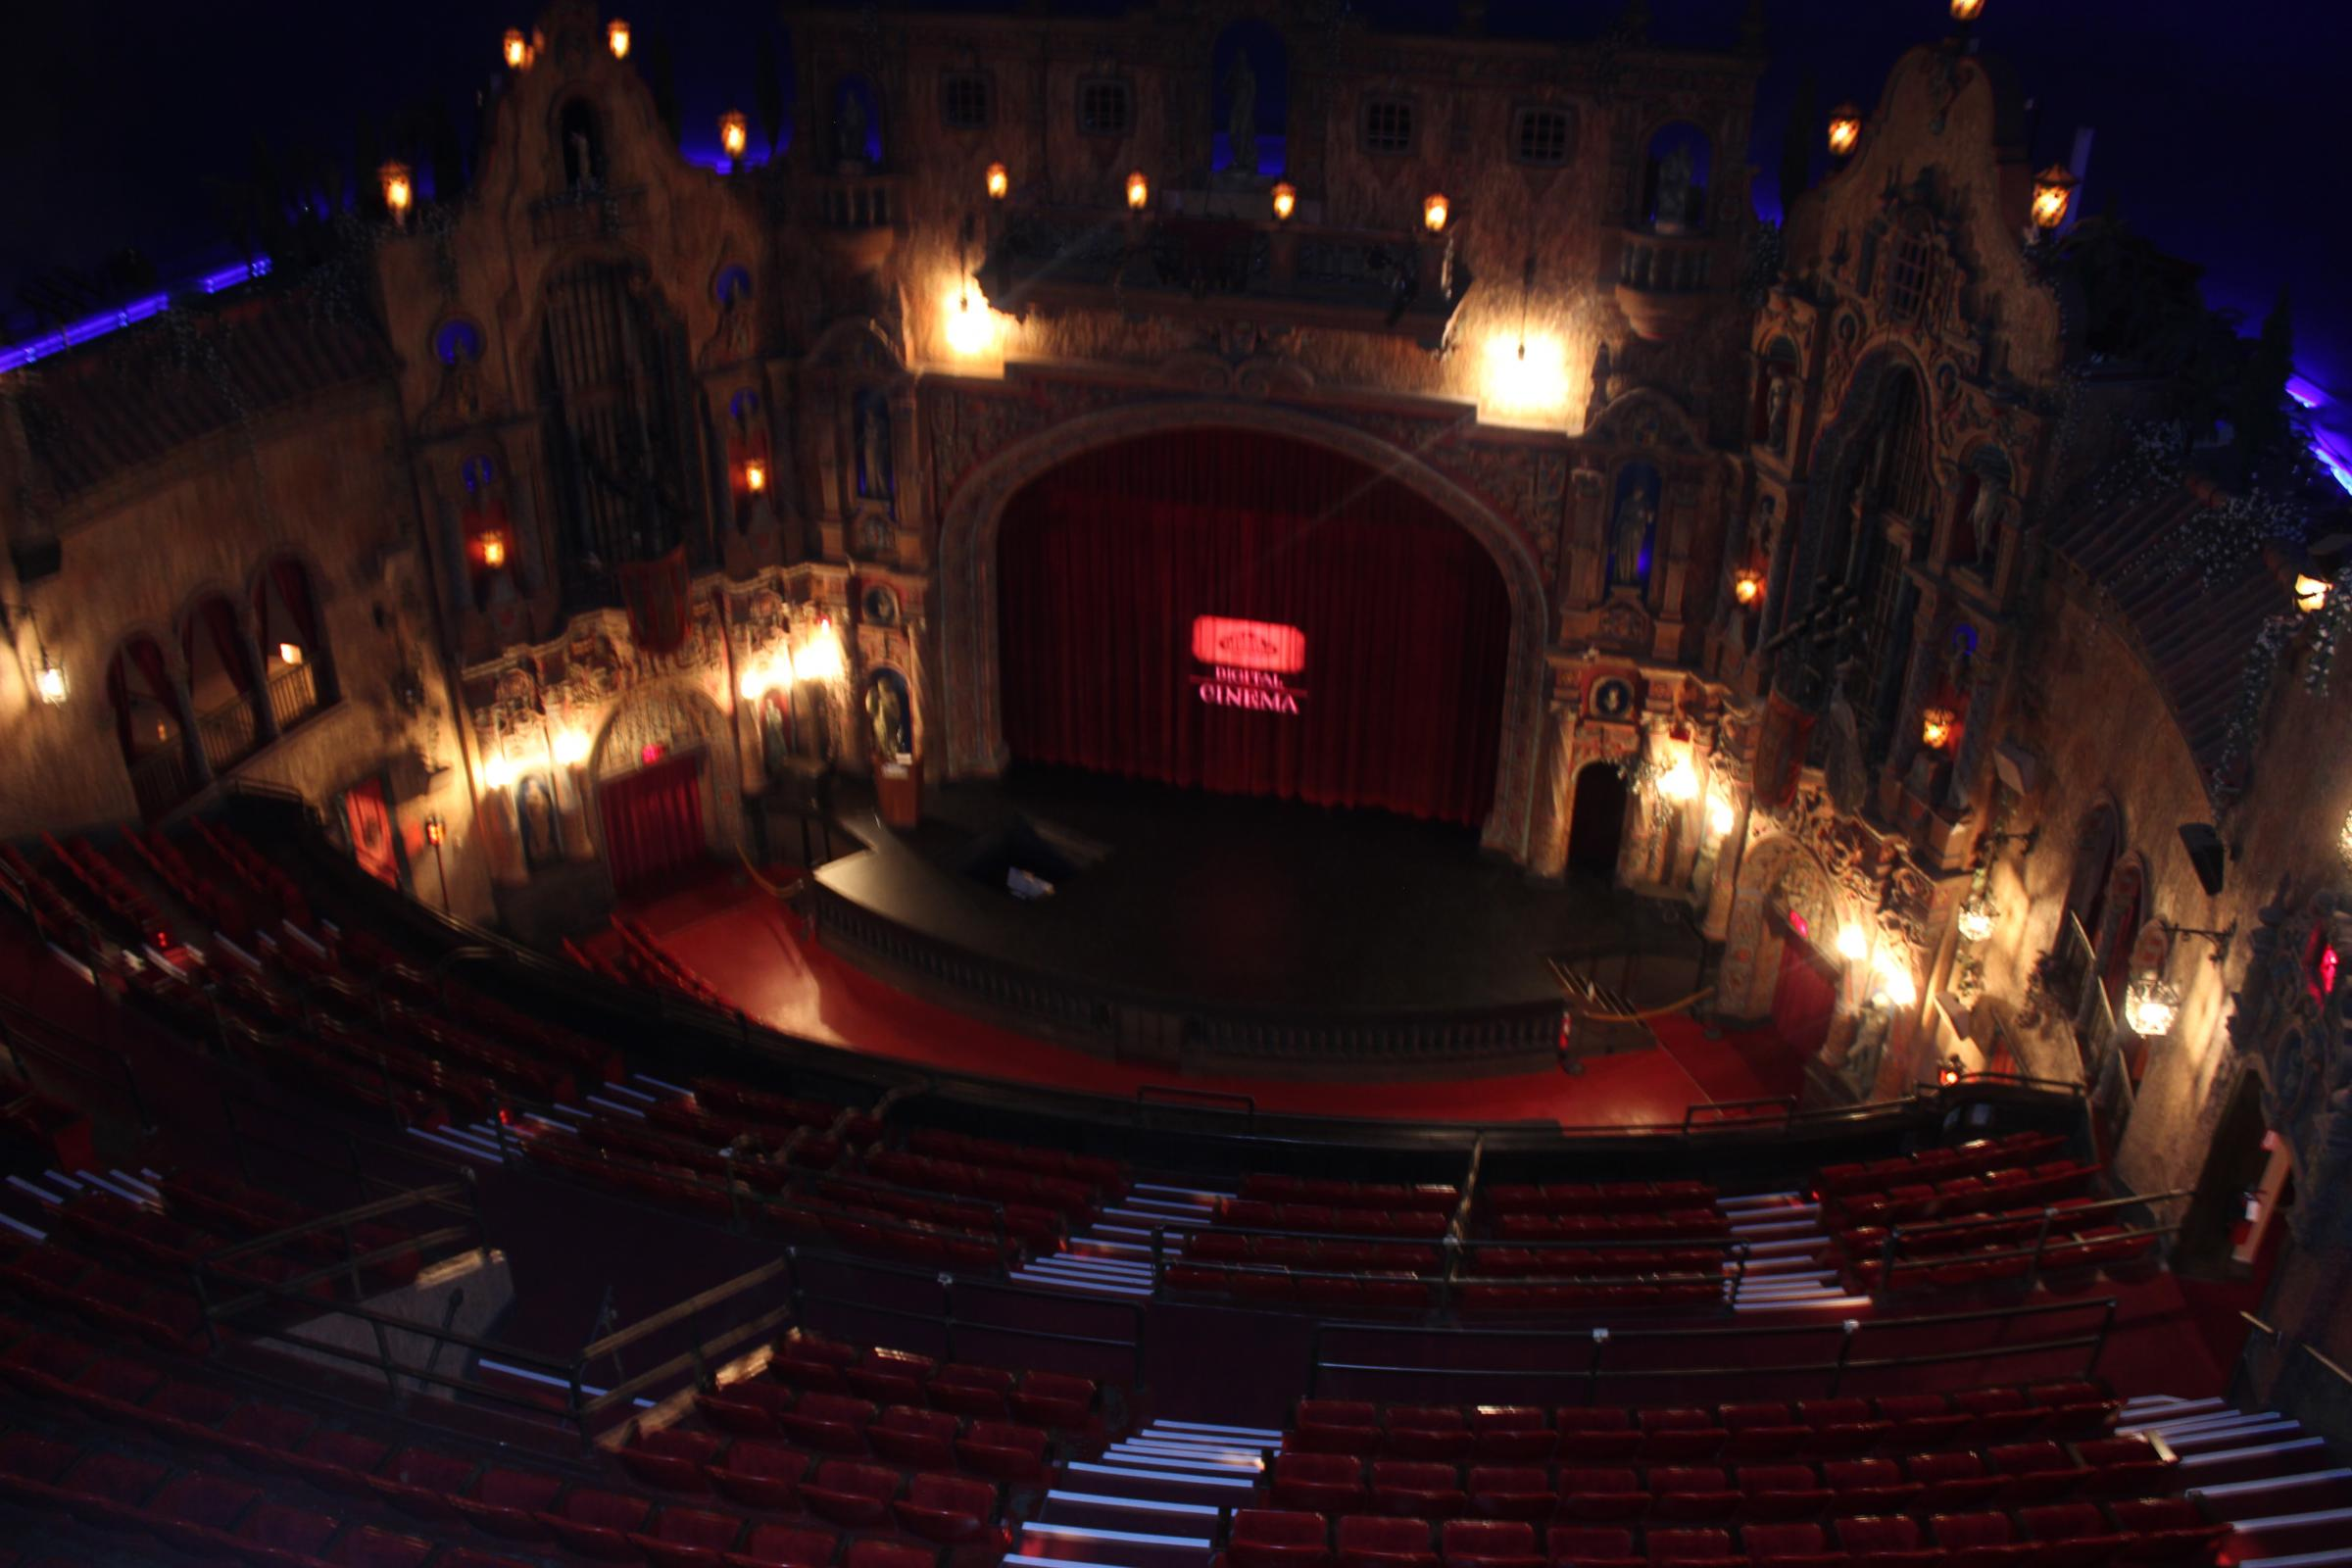 After 87 Years Tampa Theatre Goes Digital Wusf News